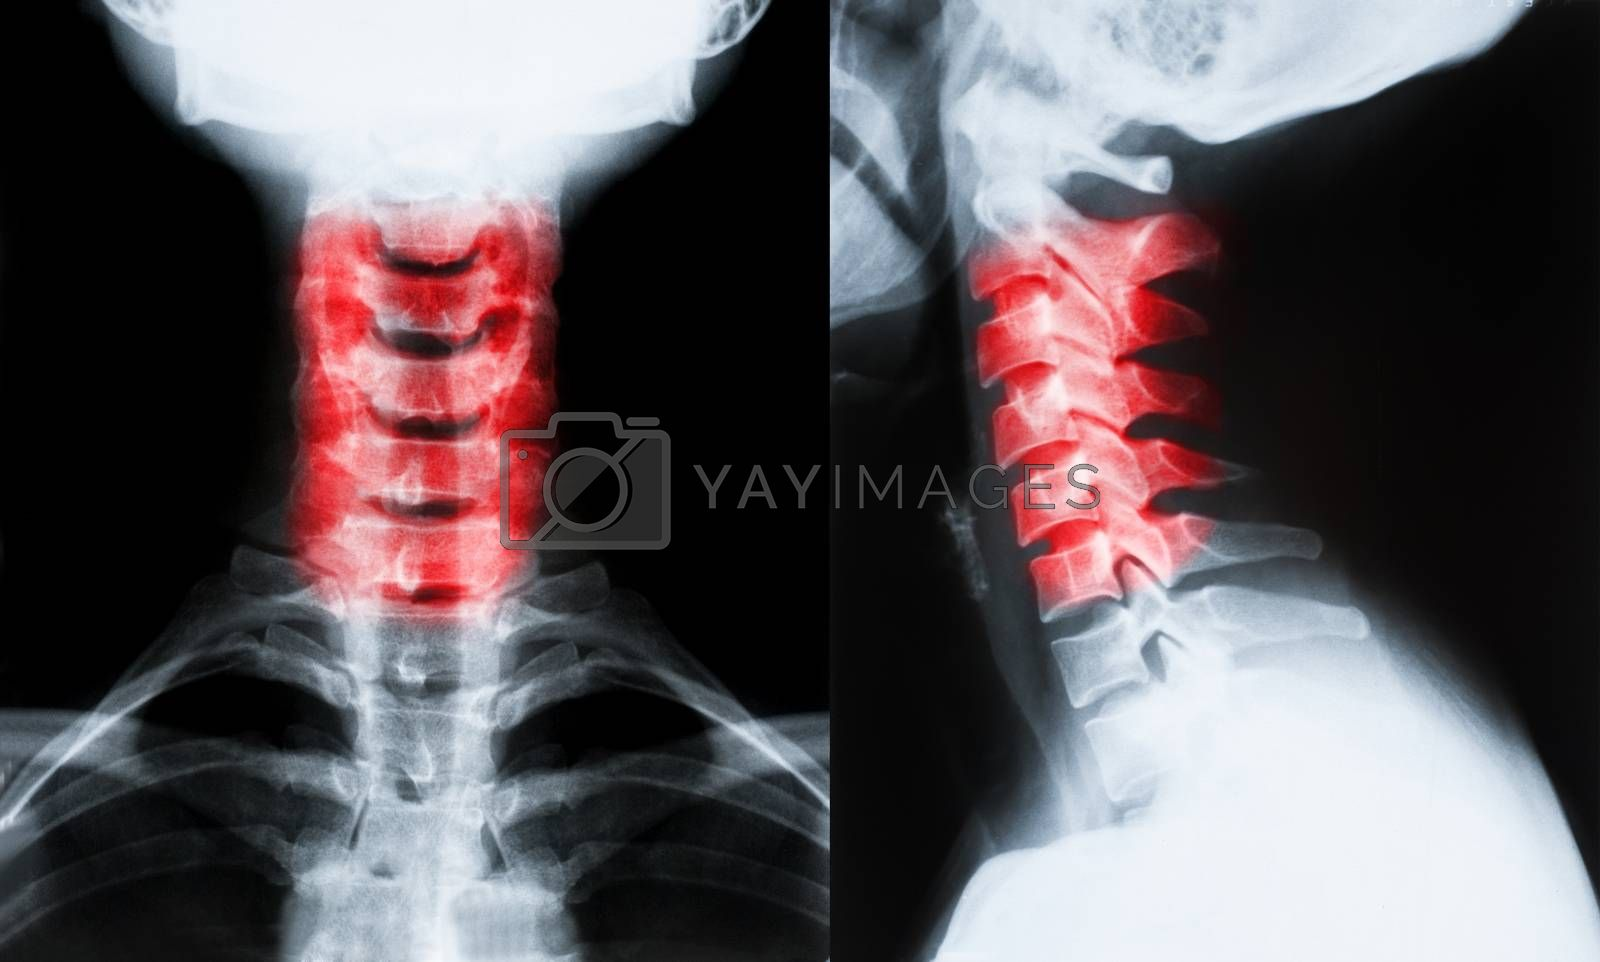 Royalty free image of X-ray image of neck by IxMaster